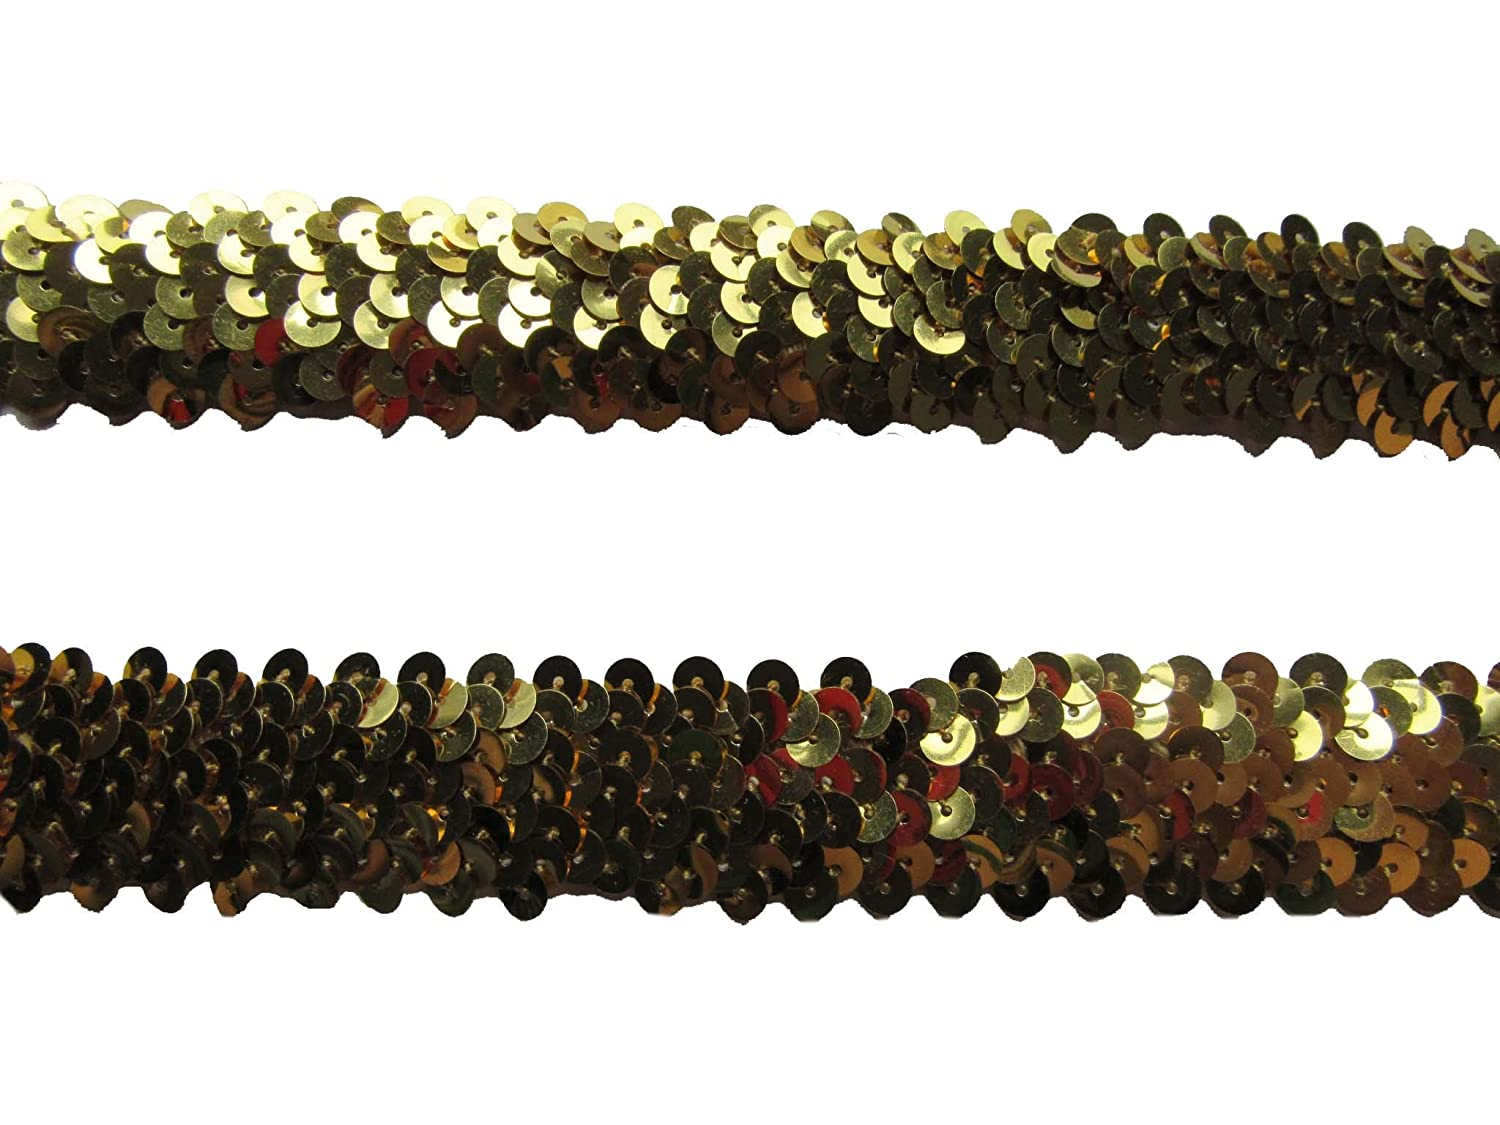 YYCRAFT 5y Large Elastic Sequins 1 Gold Ribbon Trim Sewing Craft for Hair Ties Headbands